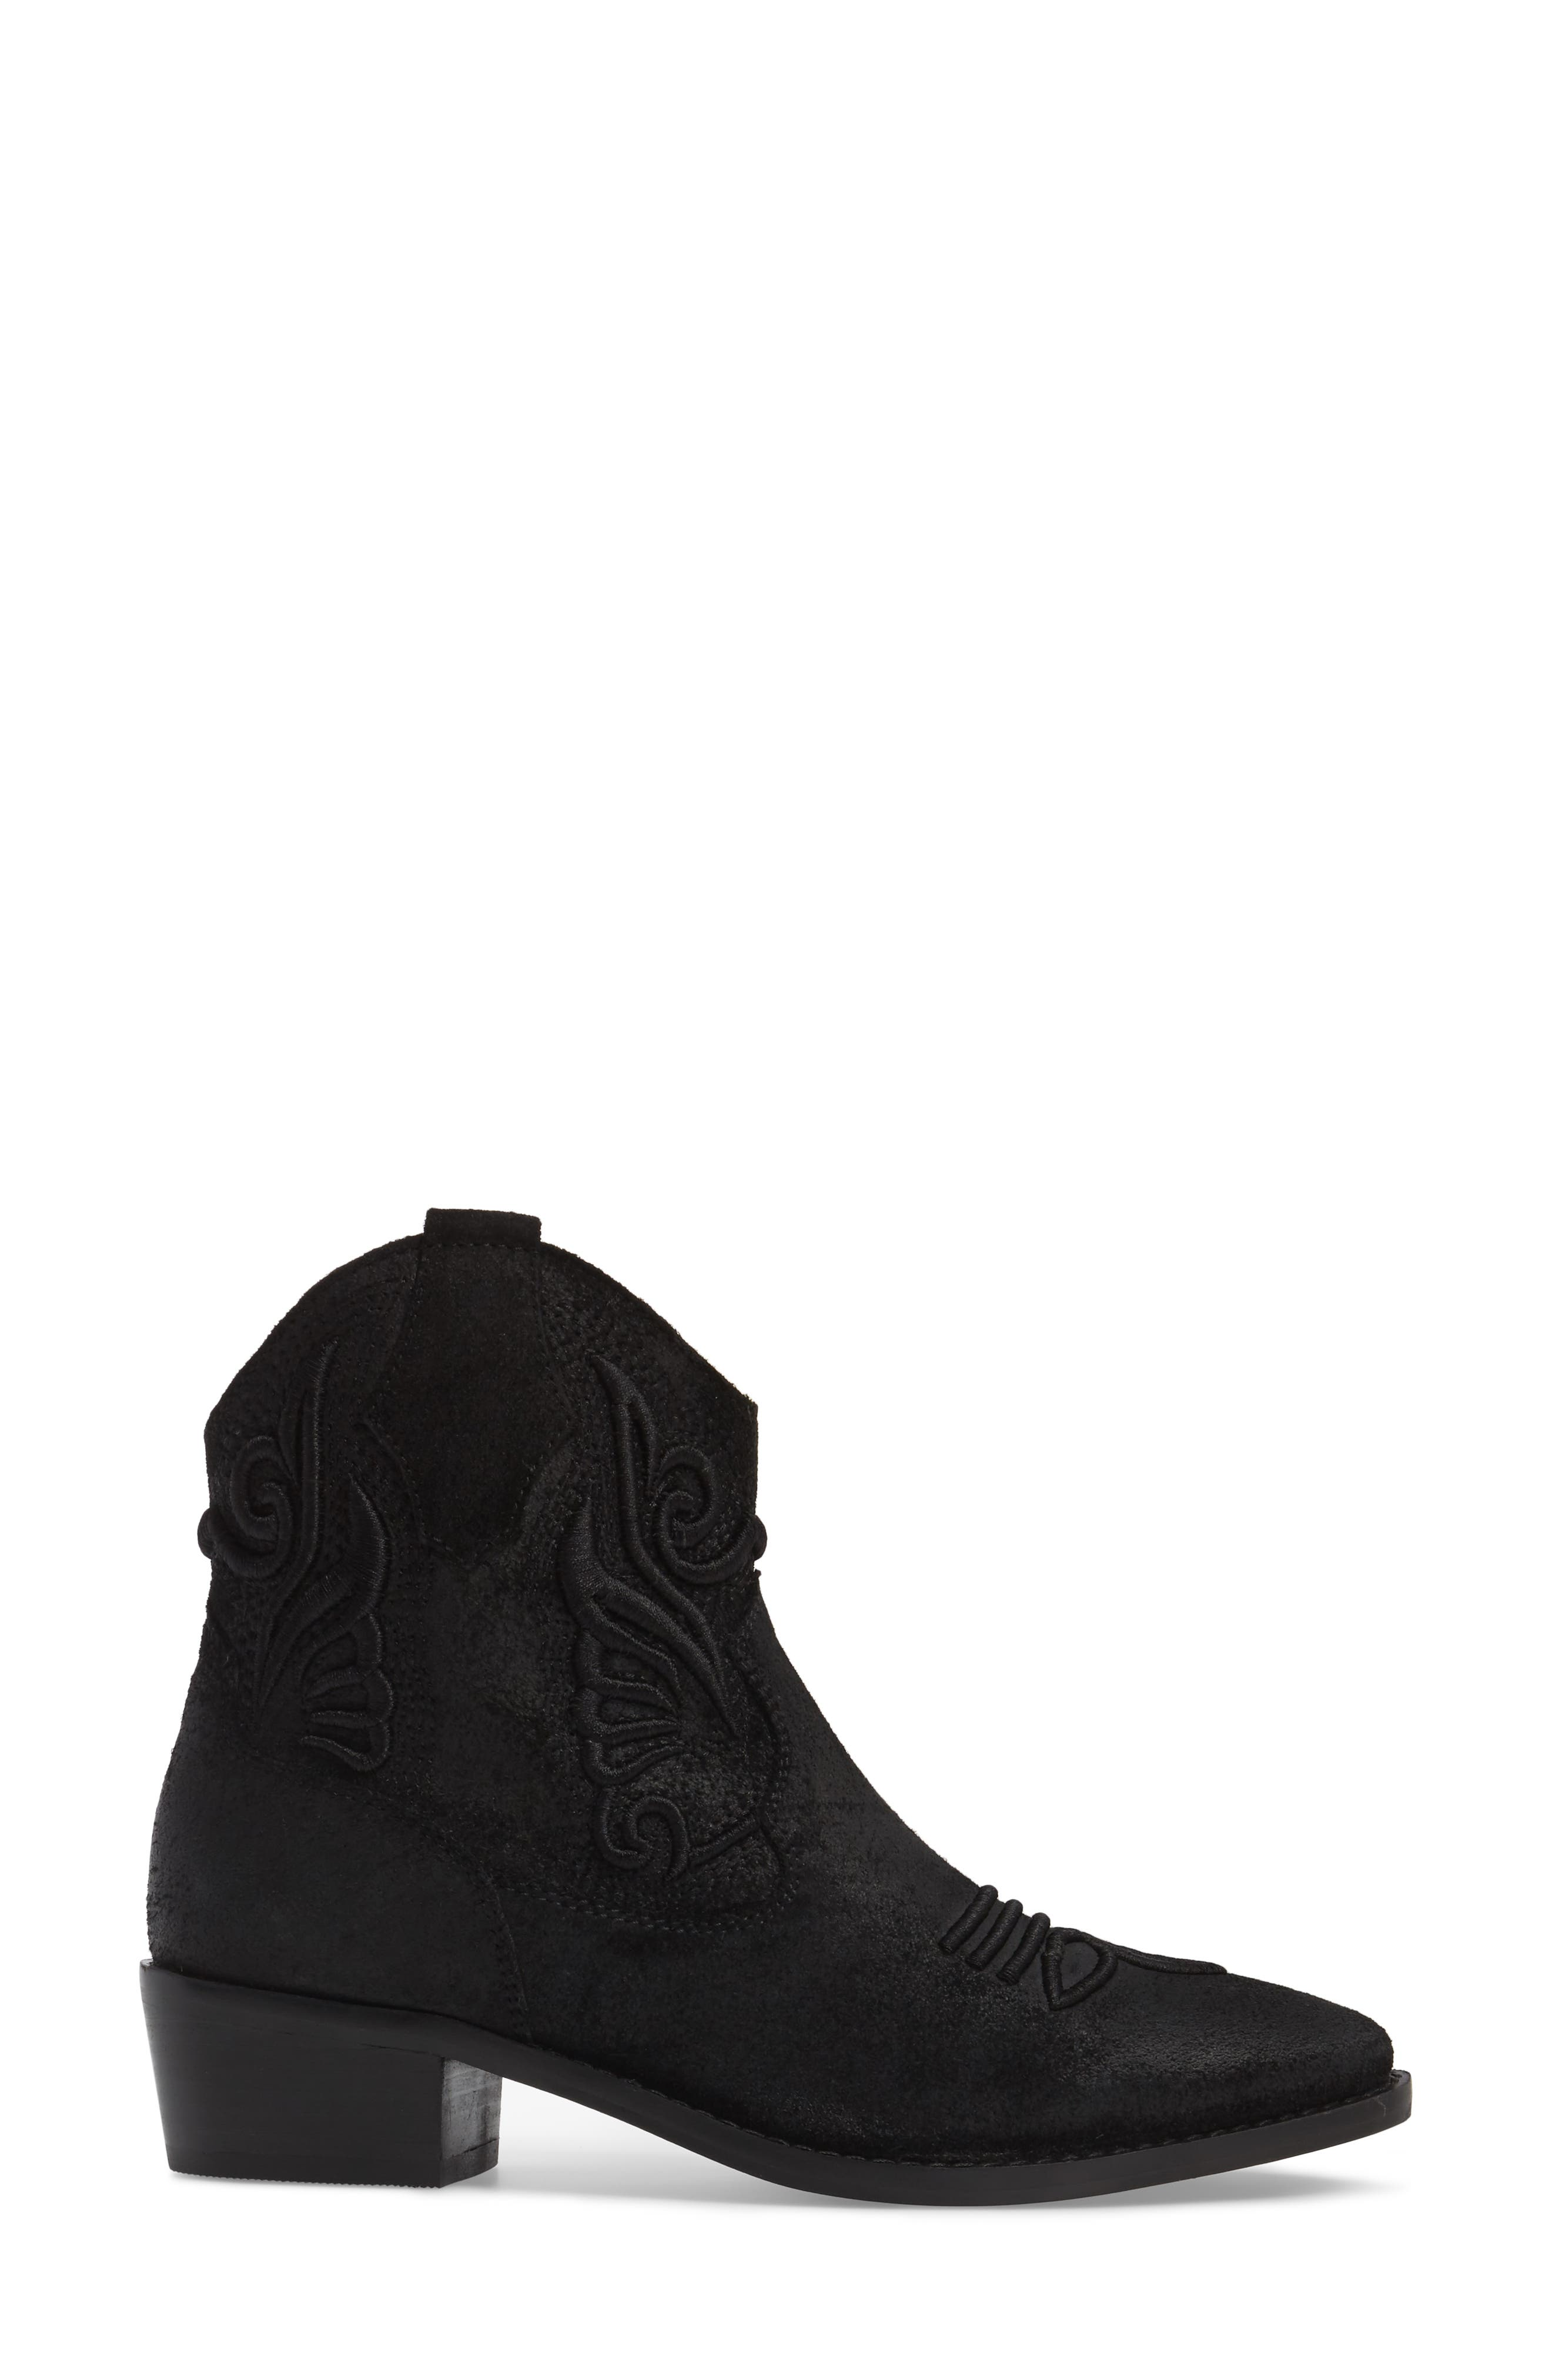 Apple Crumble Embroidered Bootie,                             Alternate thumbnail 3, color,                             001